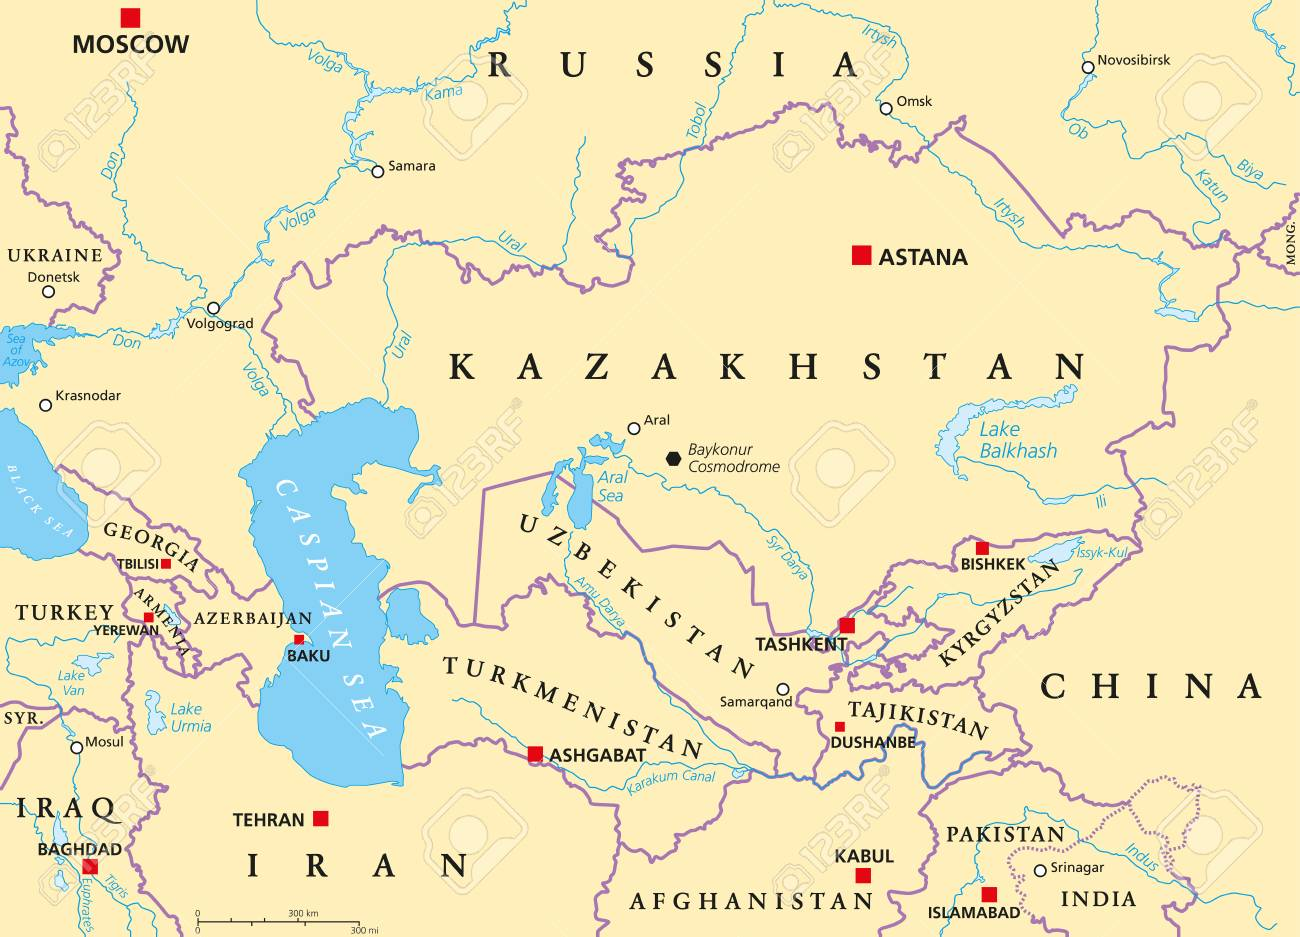 Map Of Asia Rivers And Seas.Caucasus And Central Asia Political Map With Countries Their